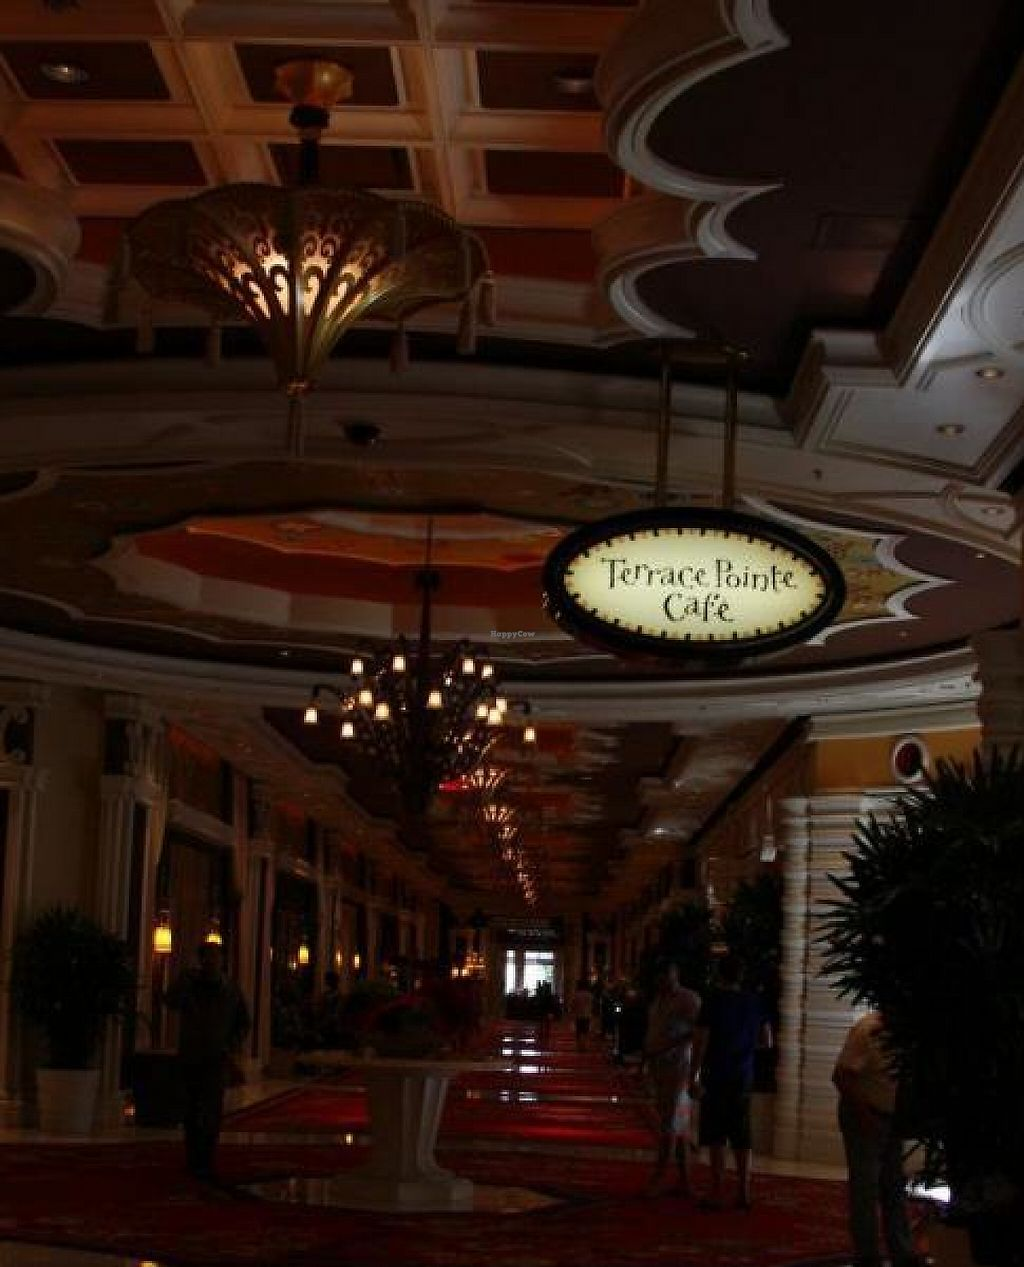 """Photo of Wynn Hotel - Terrace Pointe Cafe  by <a href=""""/members/profile/QuothTheRaven"""">QuothTheRaven</a> <br/>Outside <br/> May 2, 2013  - <a href='/contact/abuse/image/30823/207721'>Report</a>"""